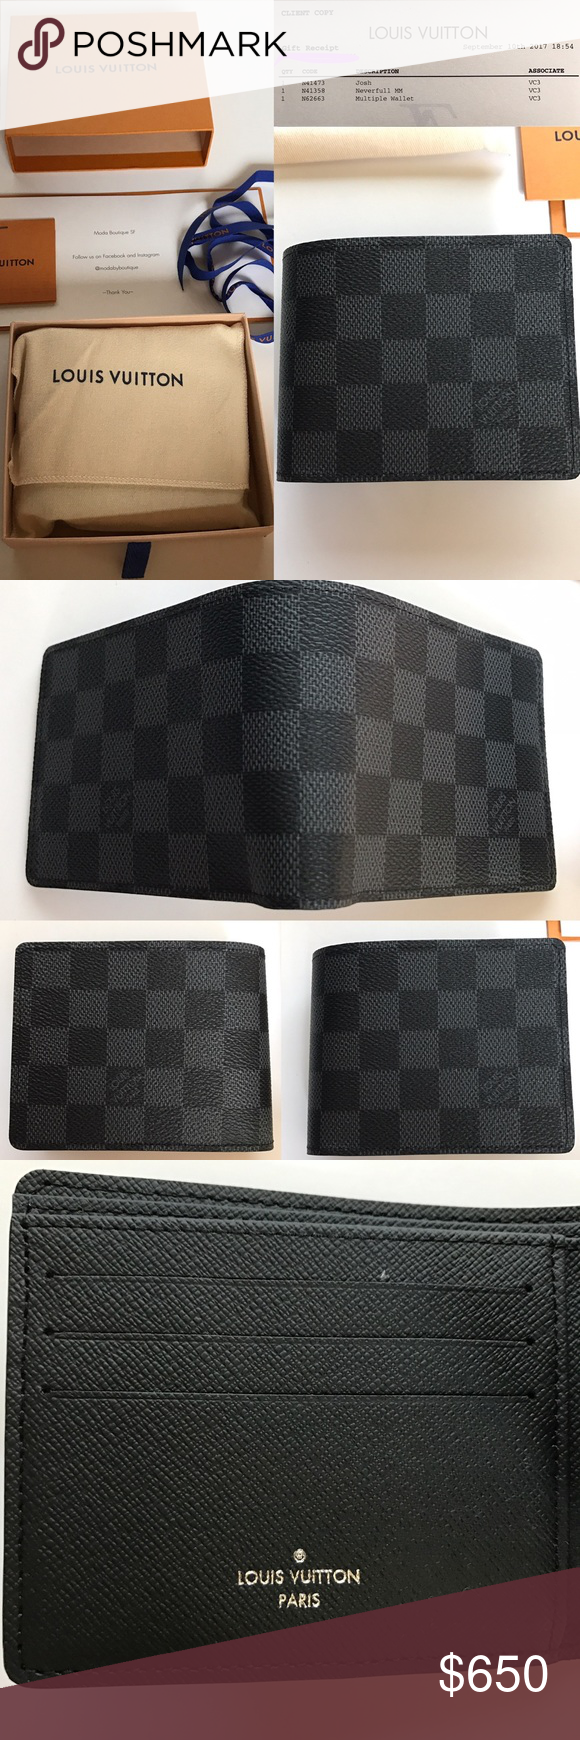 43e64c890bc8 NEW Authentic Louis Vuitton Multiple Wallet DE LV Men s Louis Vuitton  Multiple Wallet in Damier Graphite